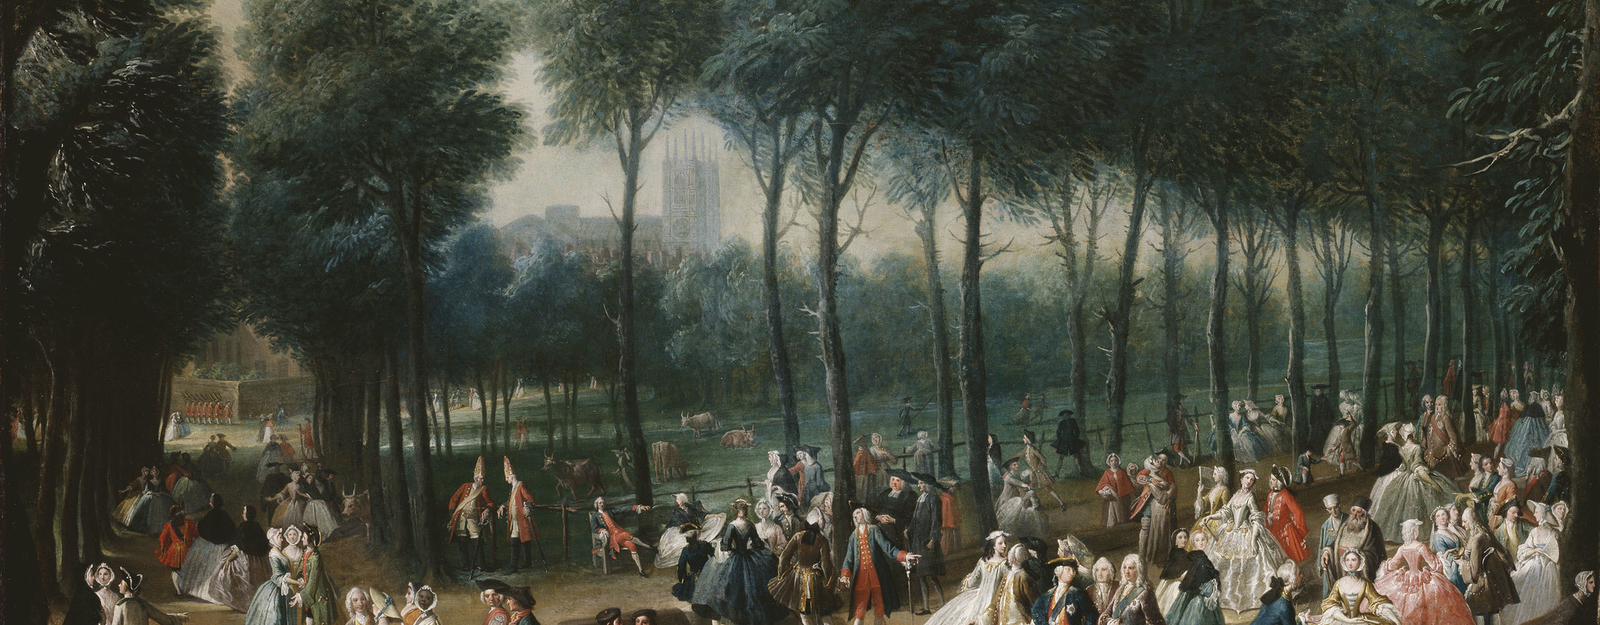 St James's Park was laid out by Charles II in the formal French style with avenues of trees and a long rectangular canal. This scene is viewed looking back towards Whitehall Palace down the oblique avenue of trees. Westminster Abbey is visible in th